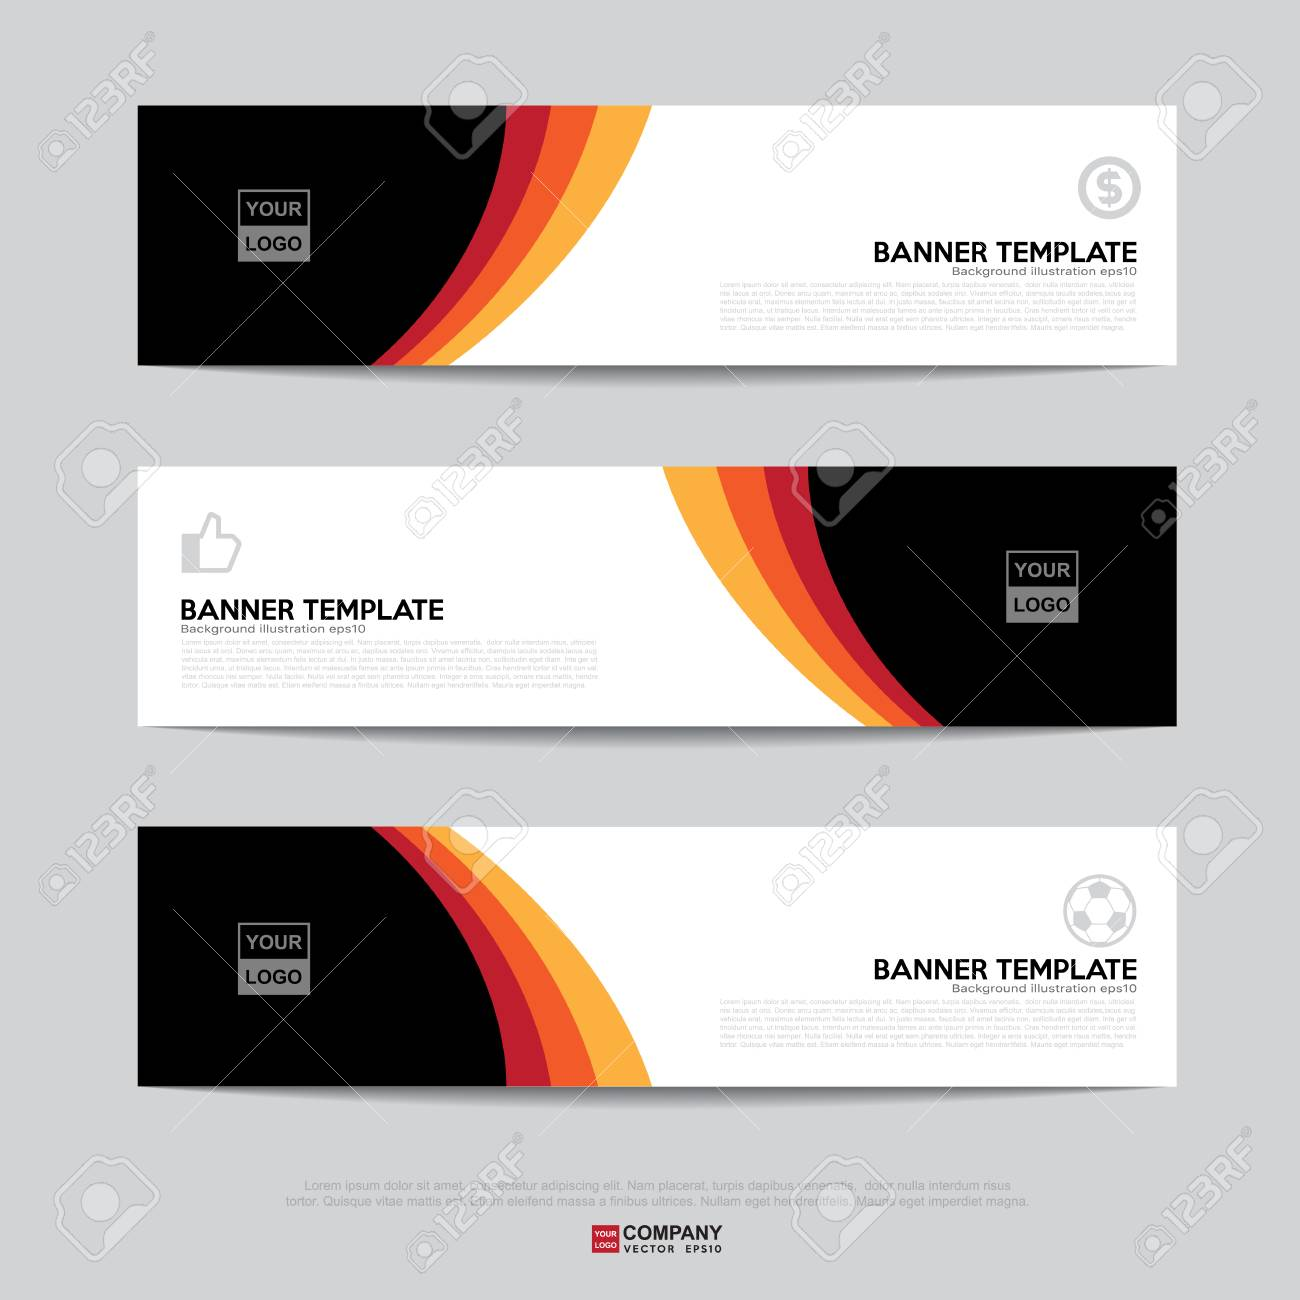 Design Of Flyers, Banners, Brochures And Cards Template,Banner ...